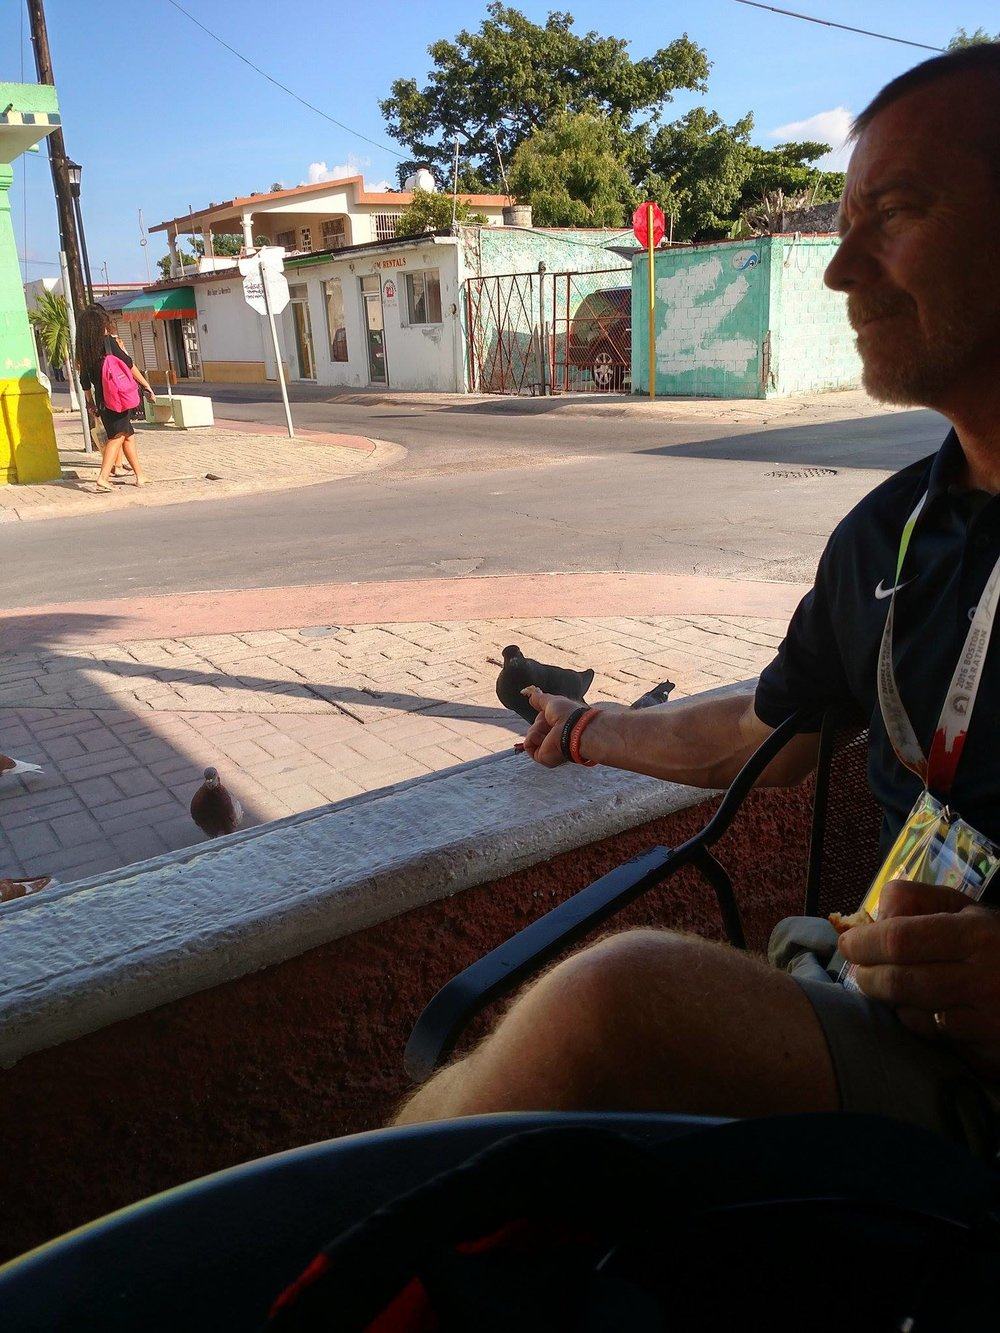 Dad made some friends in Mexico :)